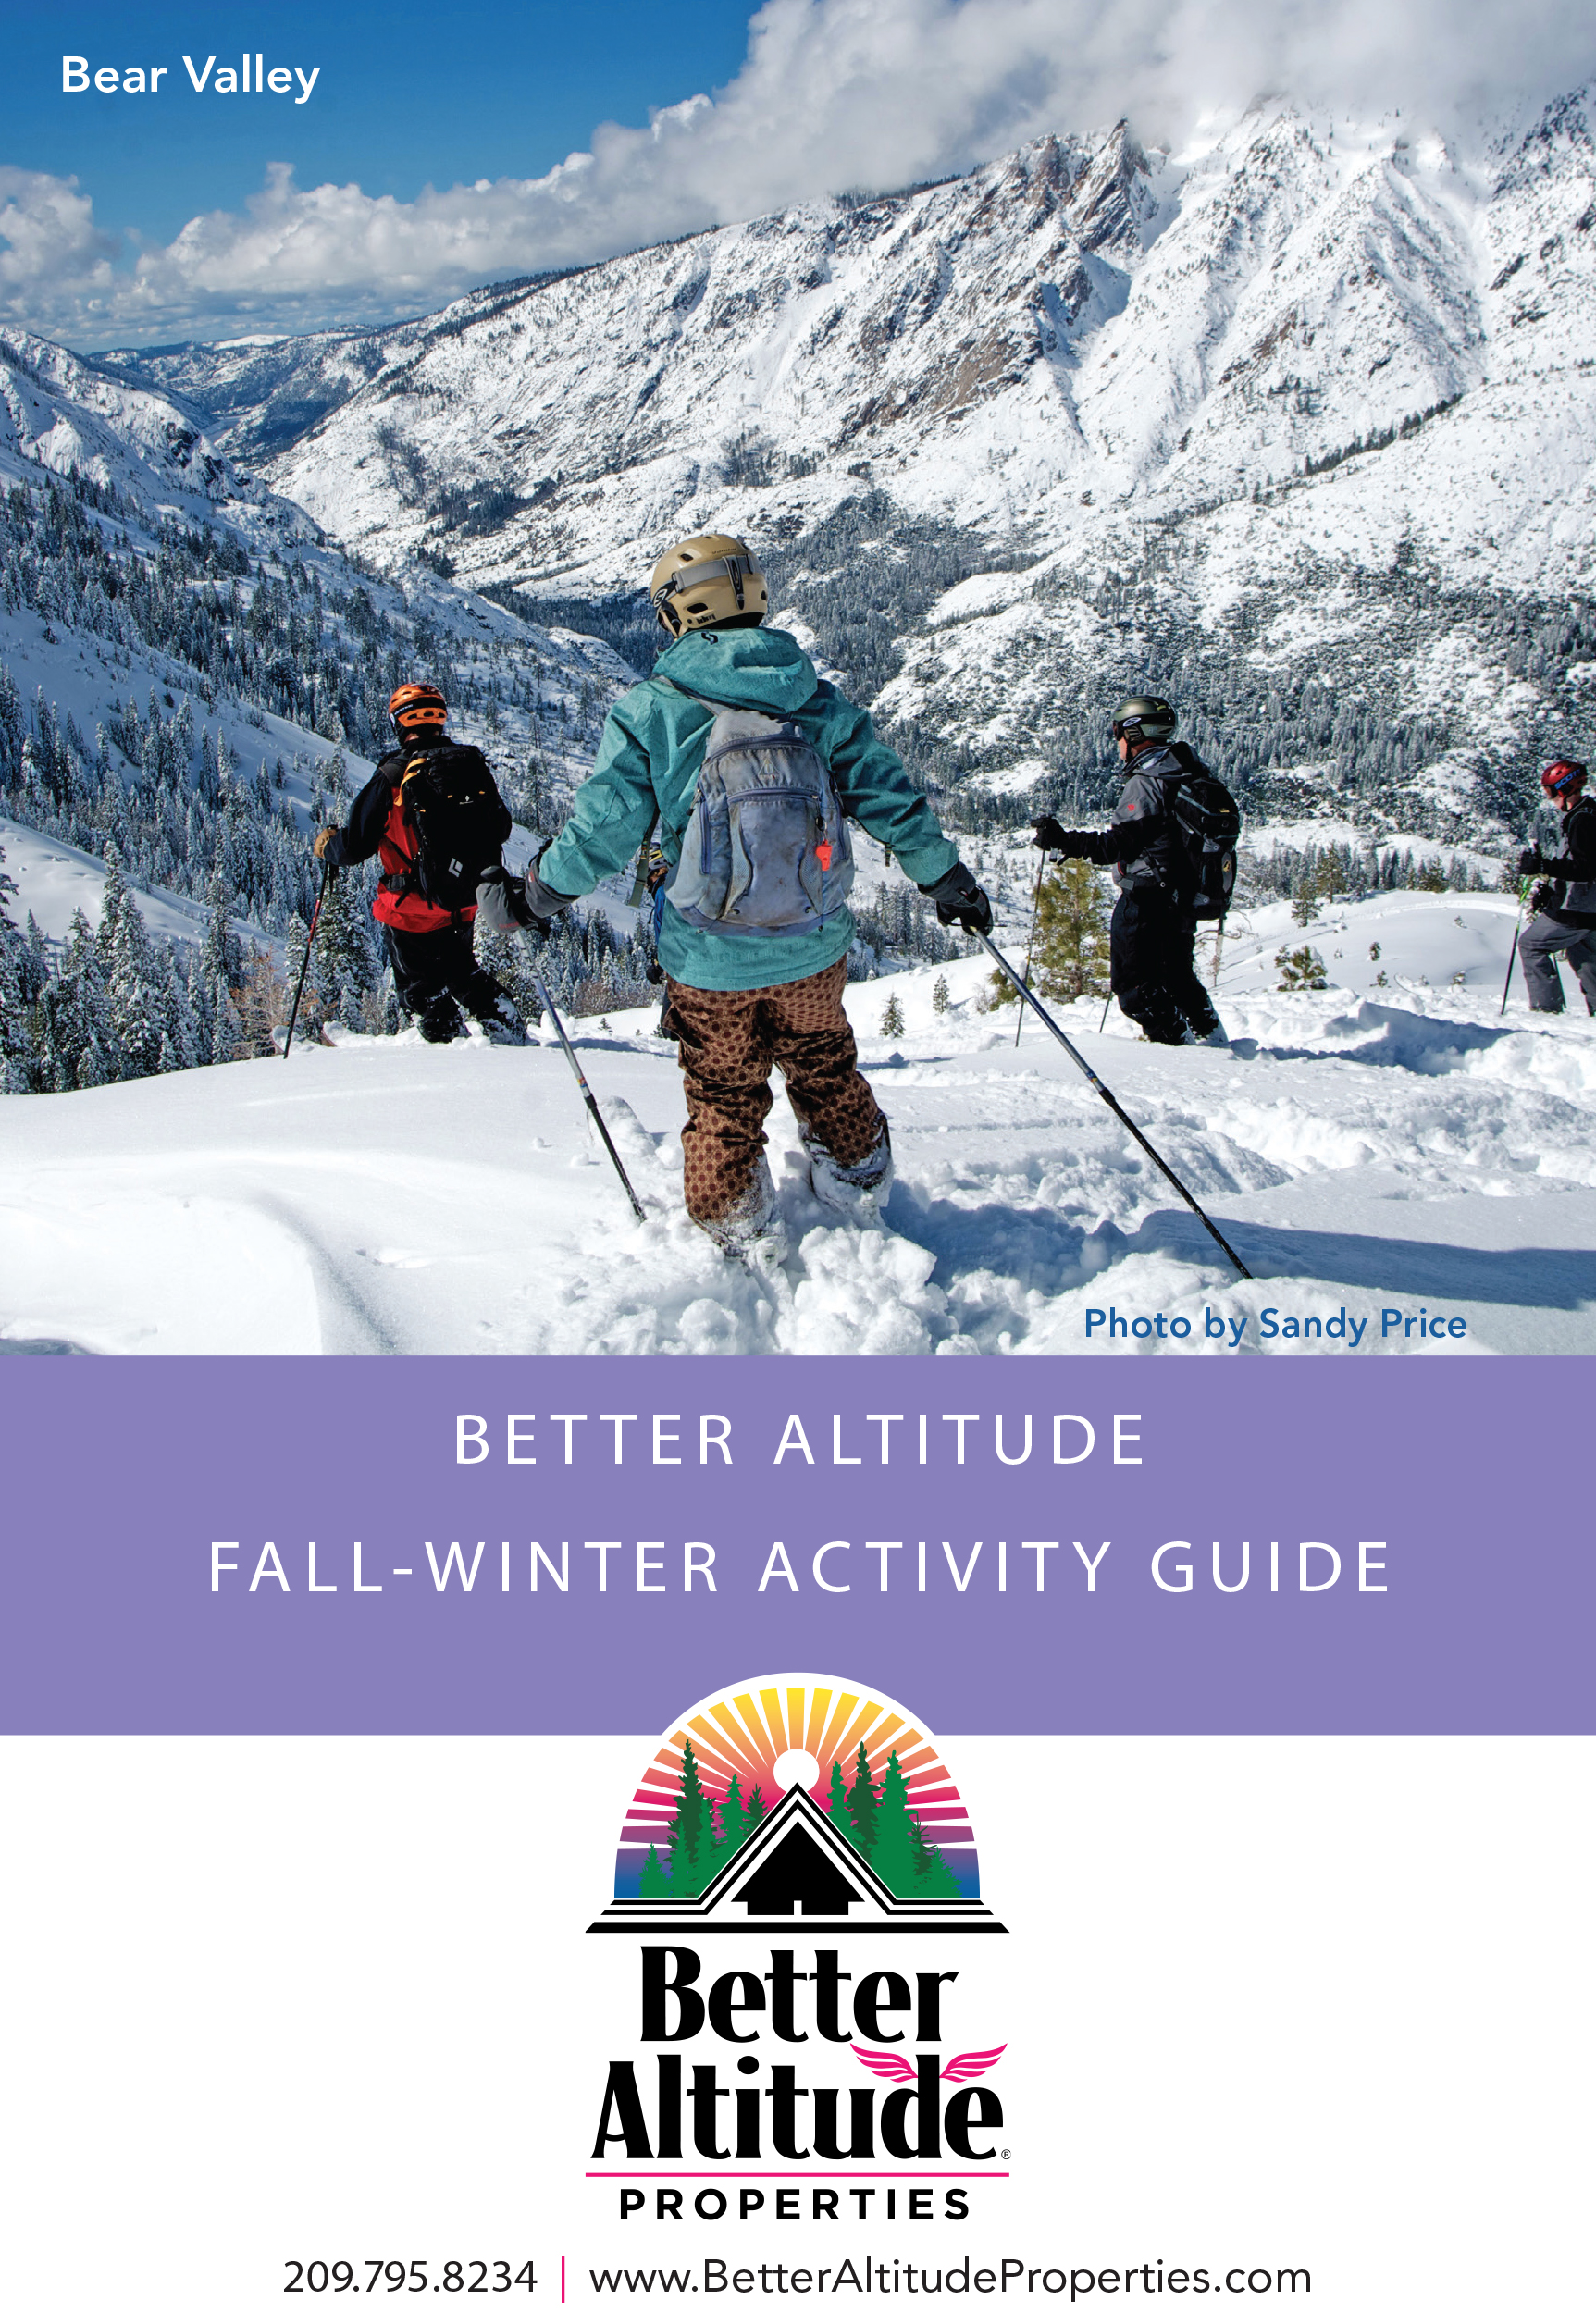 better altitude fall-winter activity guide